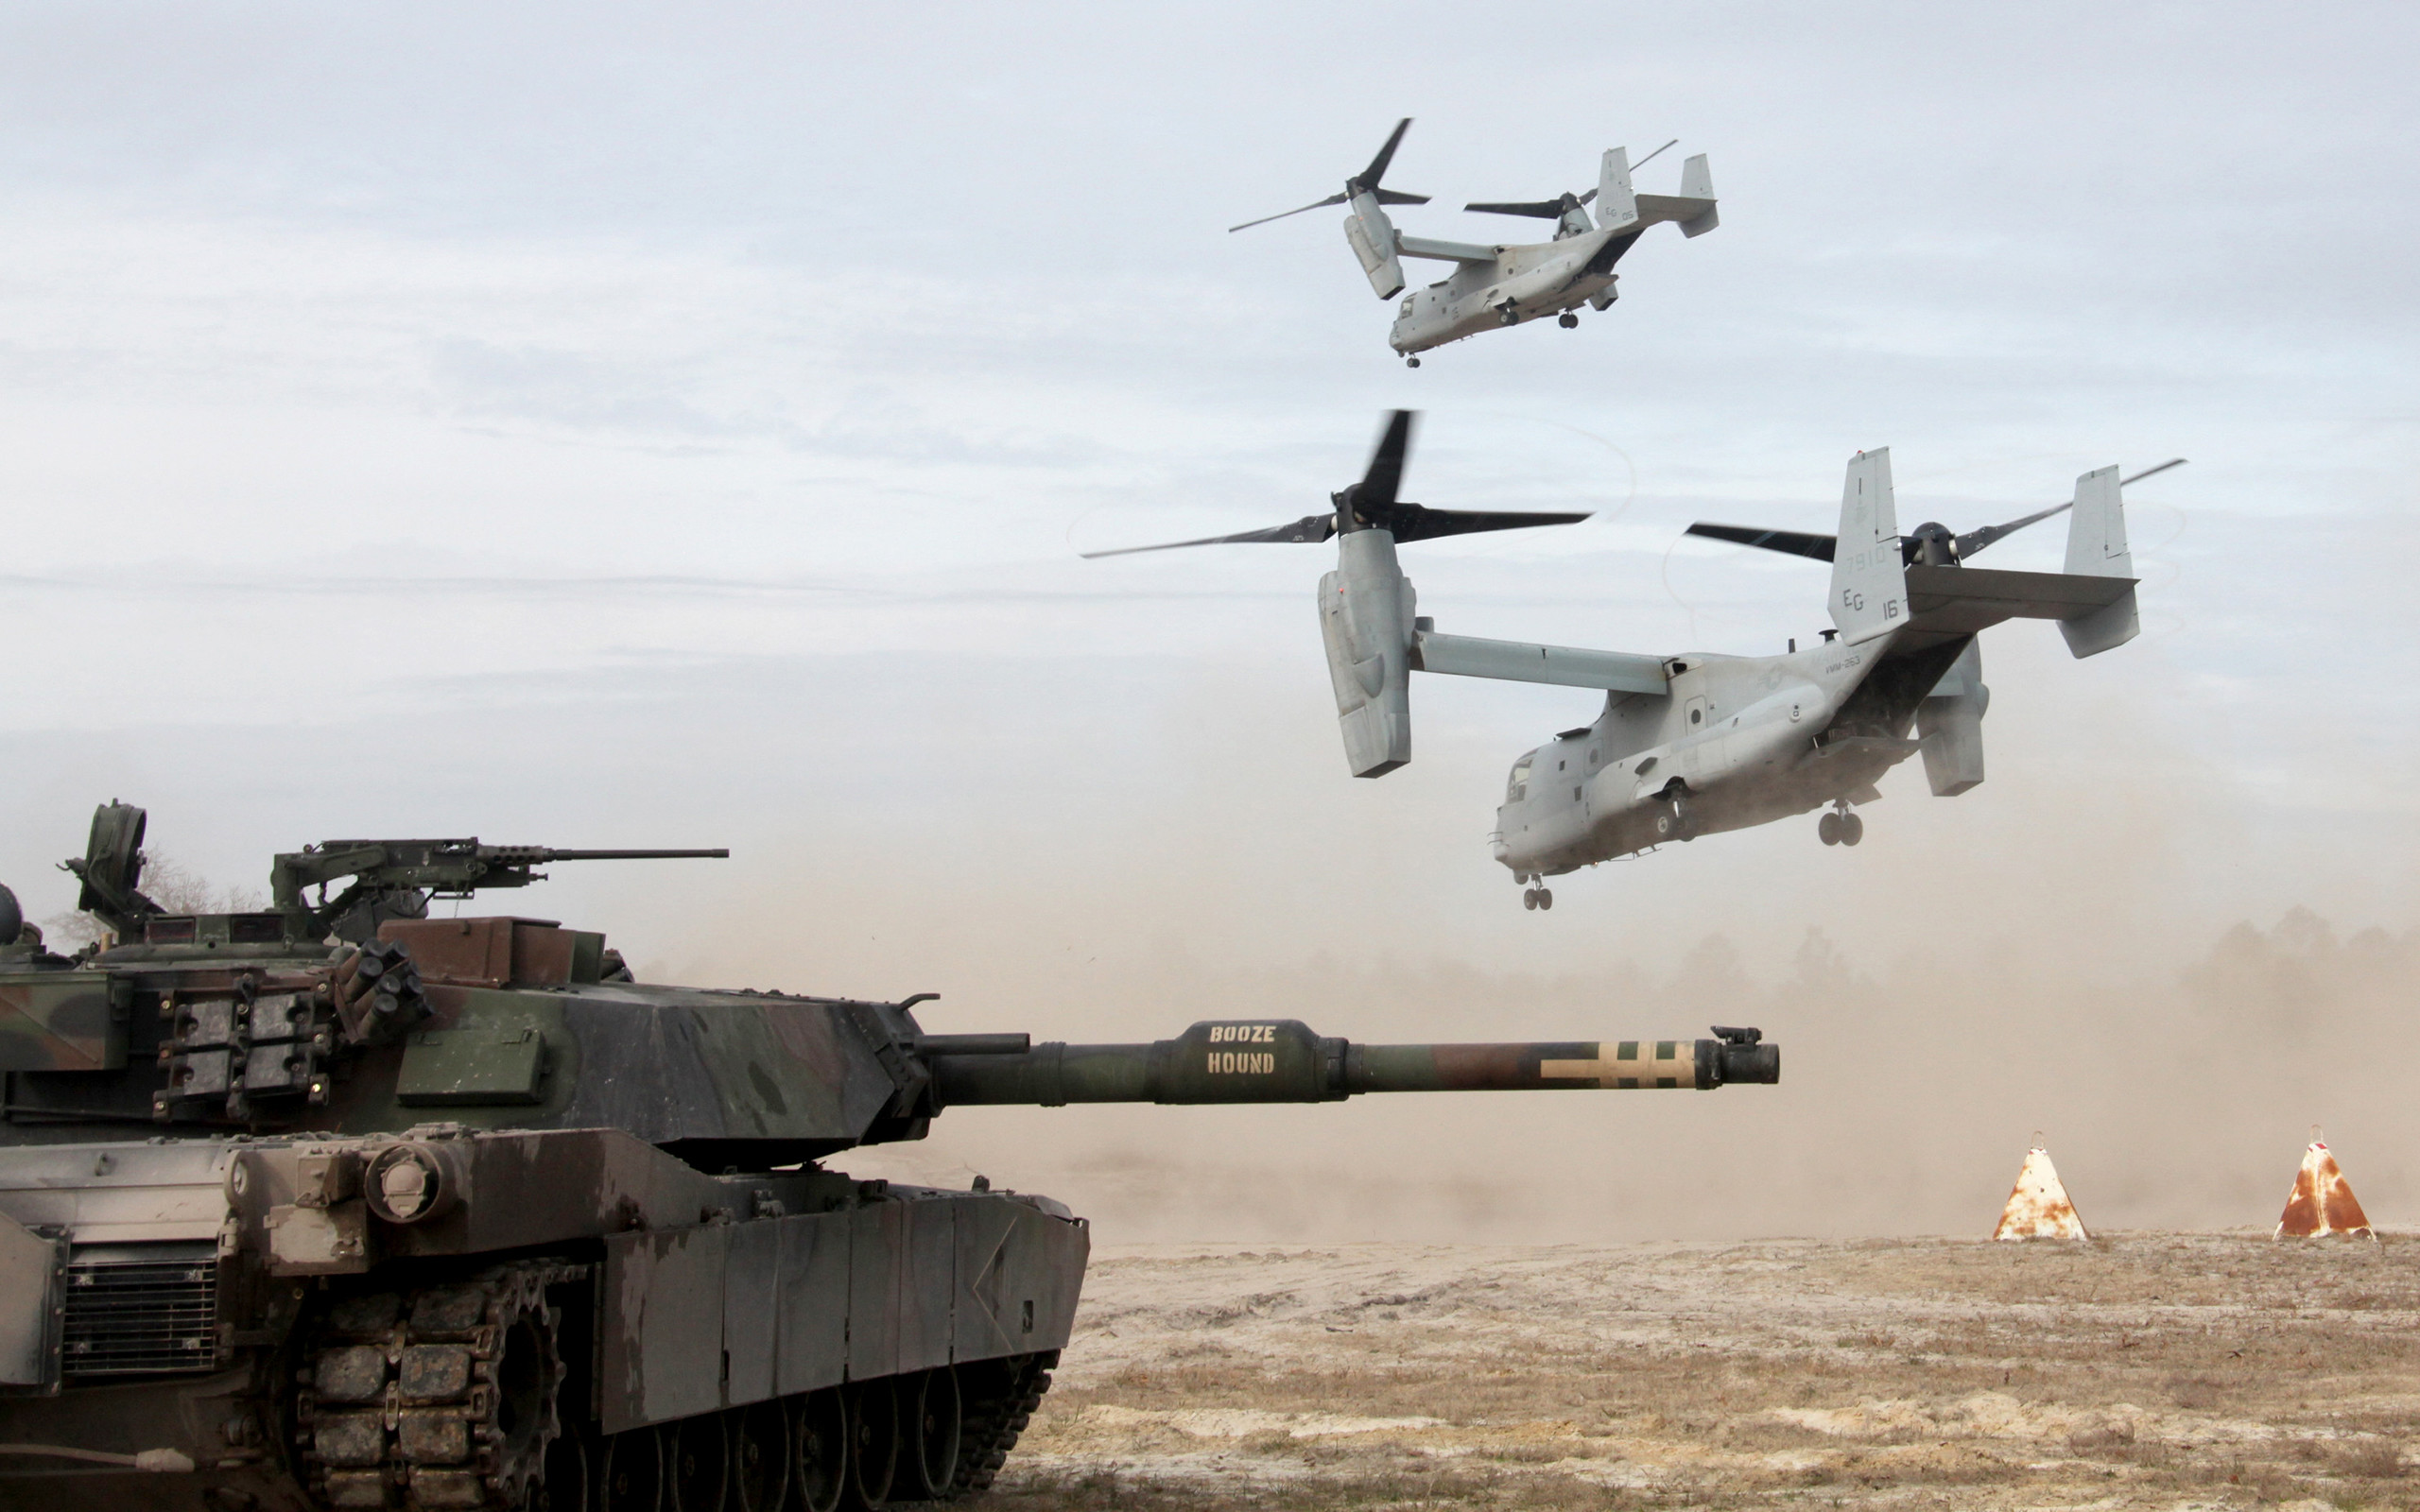 2560x1600 Aircraft M1A1 Abrams Tank Military Tanks United States Marine Corps V-22  Osprey ...